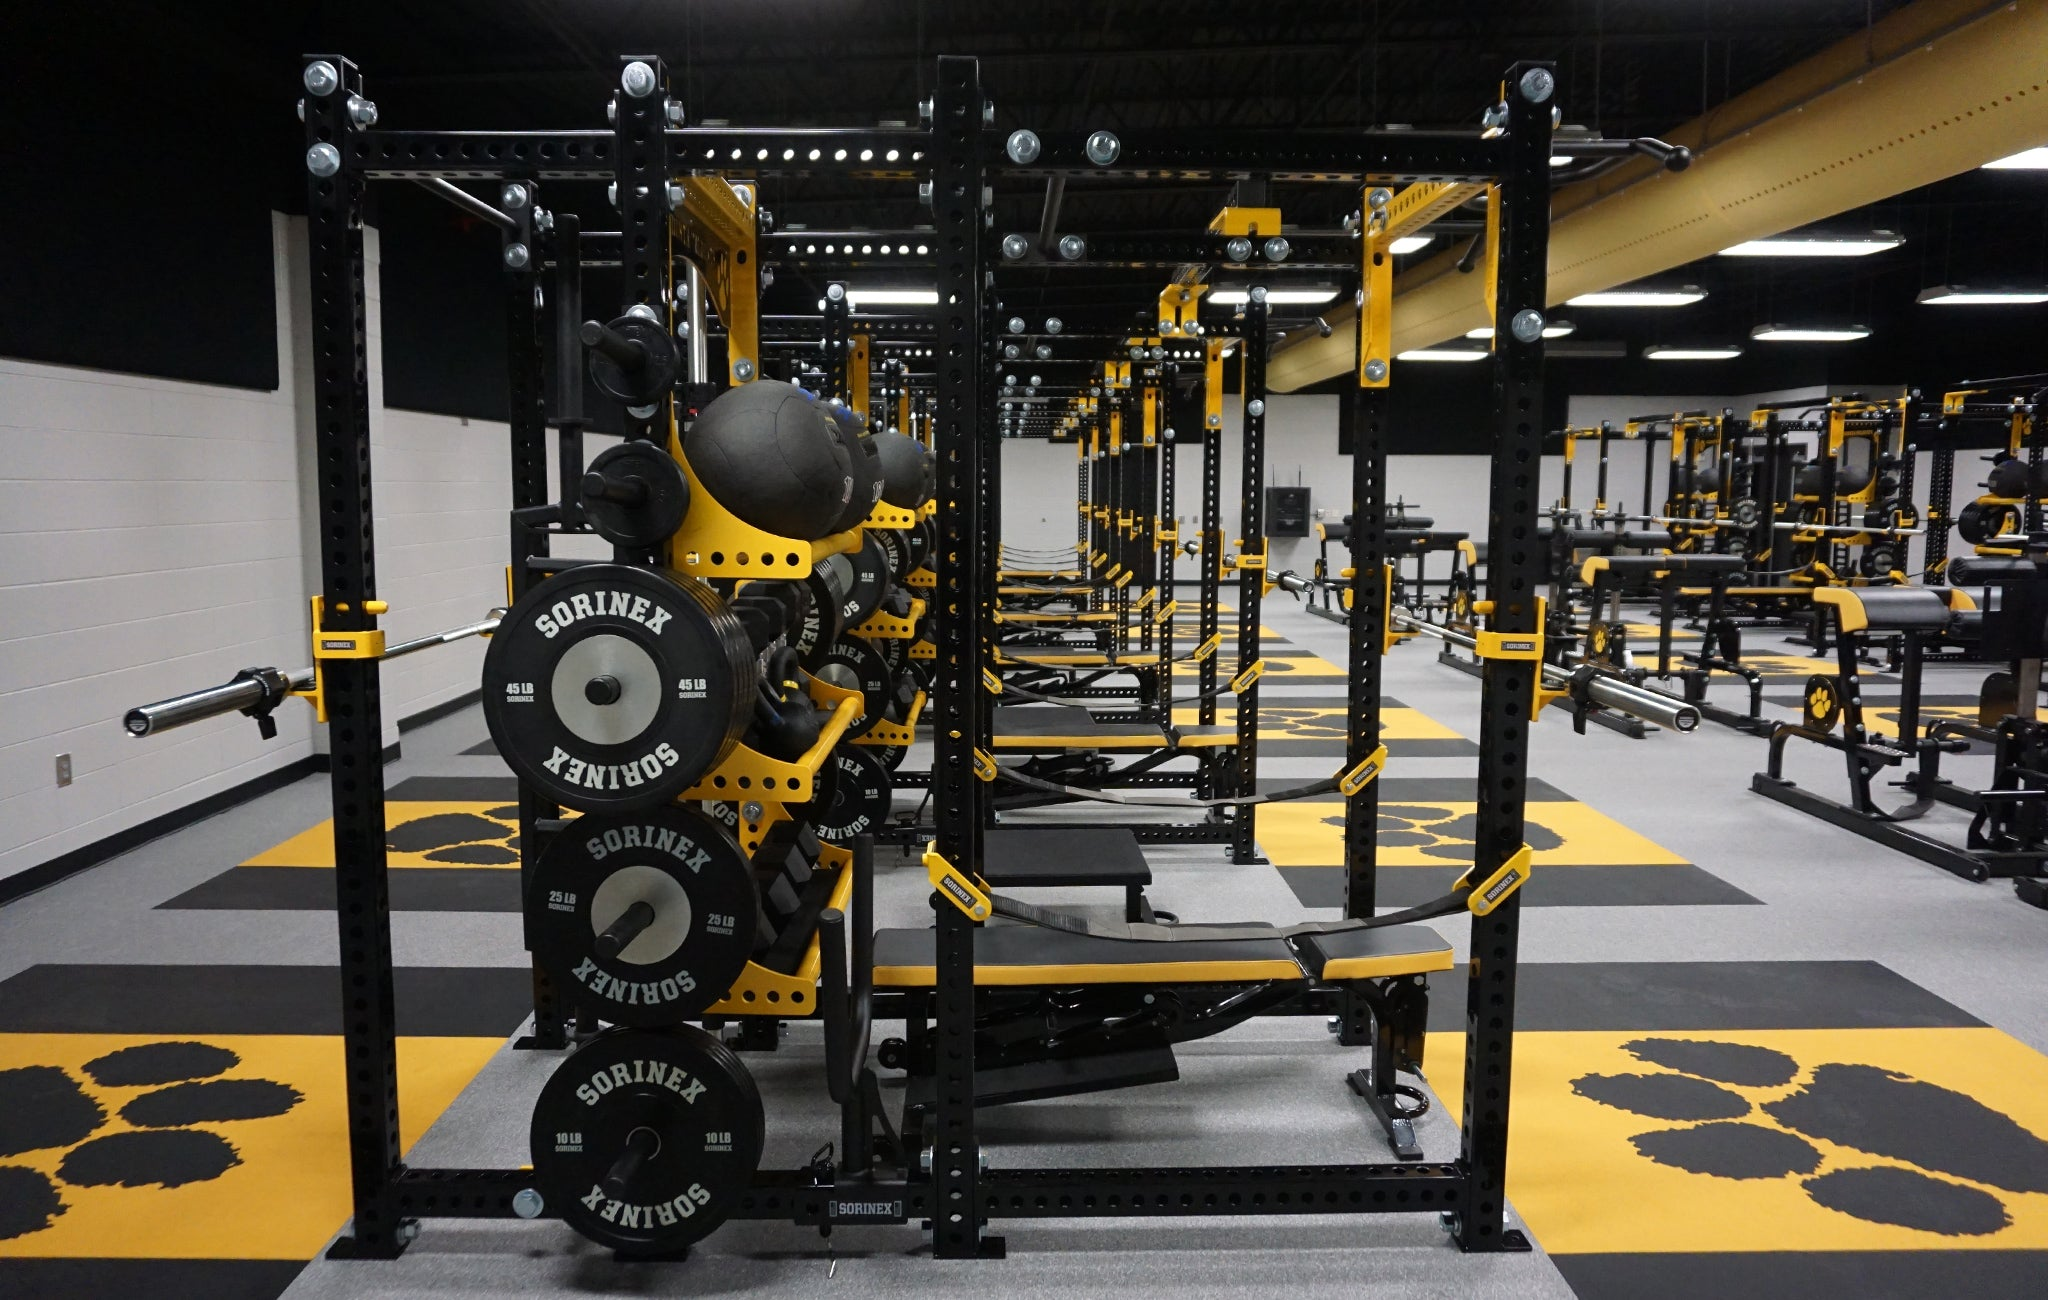 Valdosta High School strength and conditioning